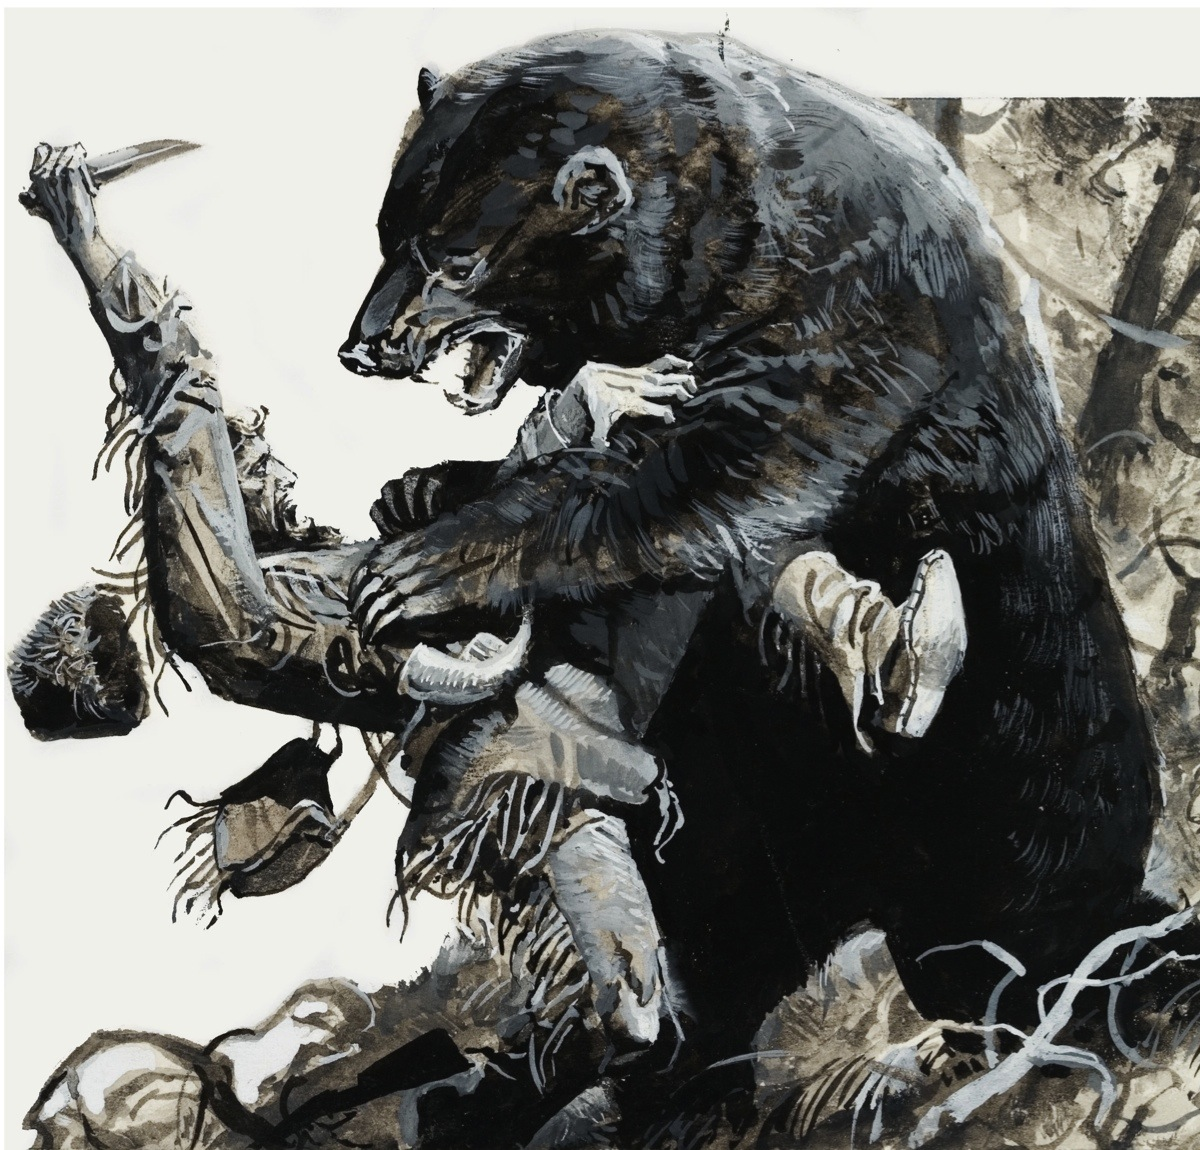 LAL278830 Hugh Glass being savaged by a bear, 1978 (gouache on paper) by Baraldi, Severino (b.1930); Private Collection; (add.info.: Hugh Glass (c.1780-1833) was an American fur trapper and frontiersman;); © Look and Learn; Italian,  out of copyright